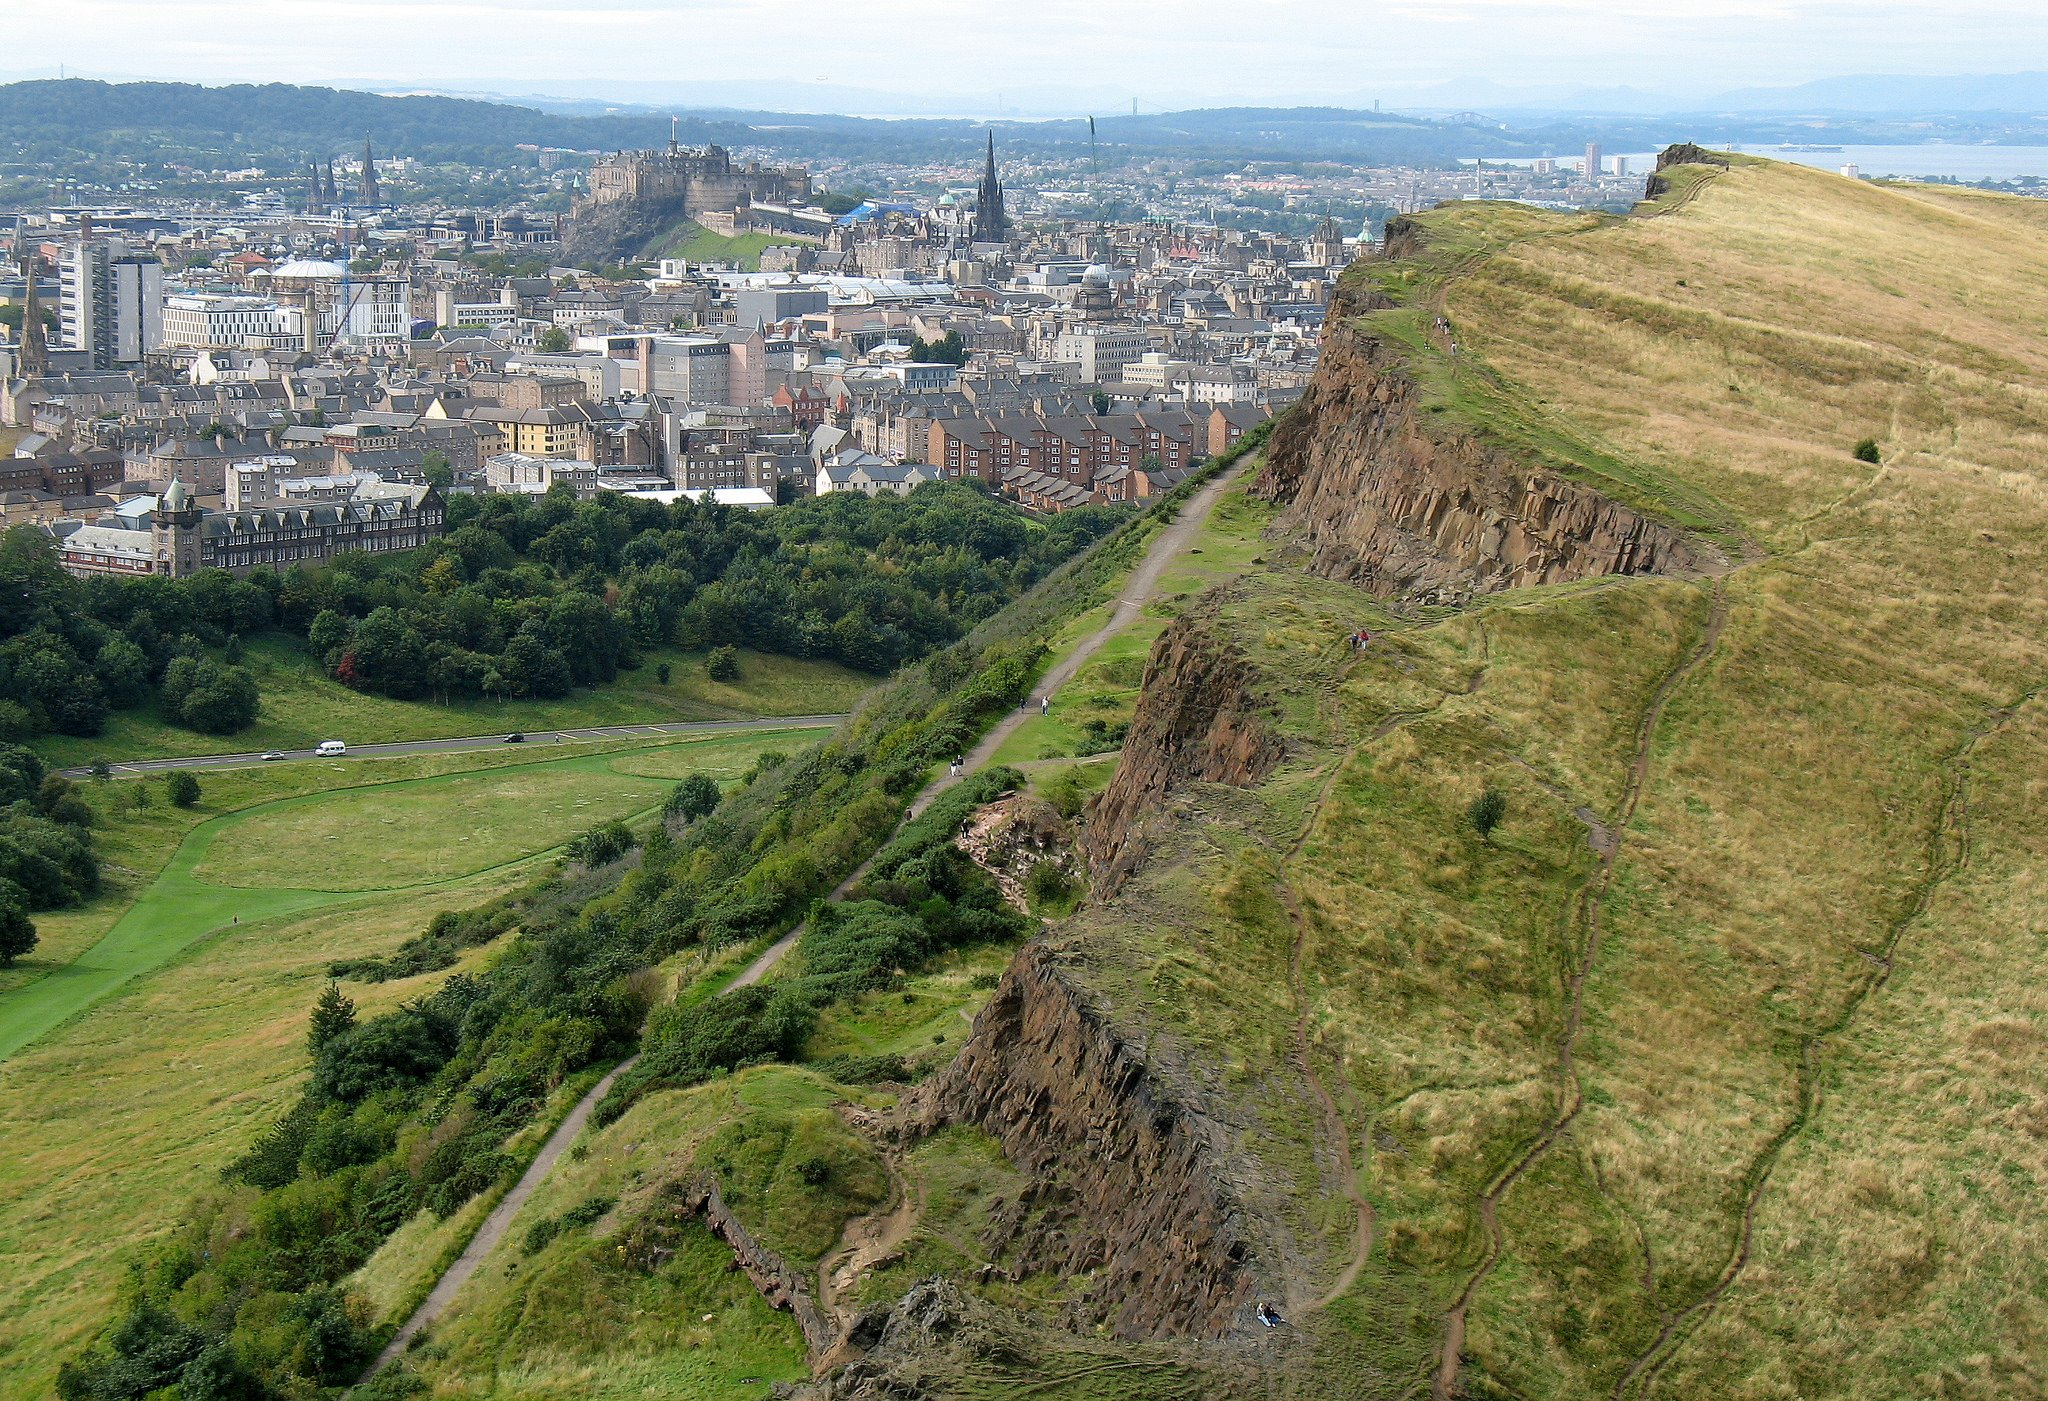 Edinburgh from the ascent to Arthur's Seat, Holyrood Park, Edinburgh, Scotland by Spencer Means (CC)